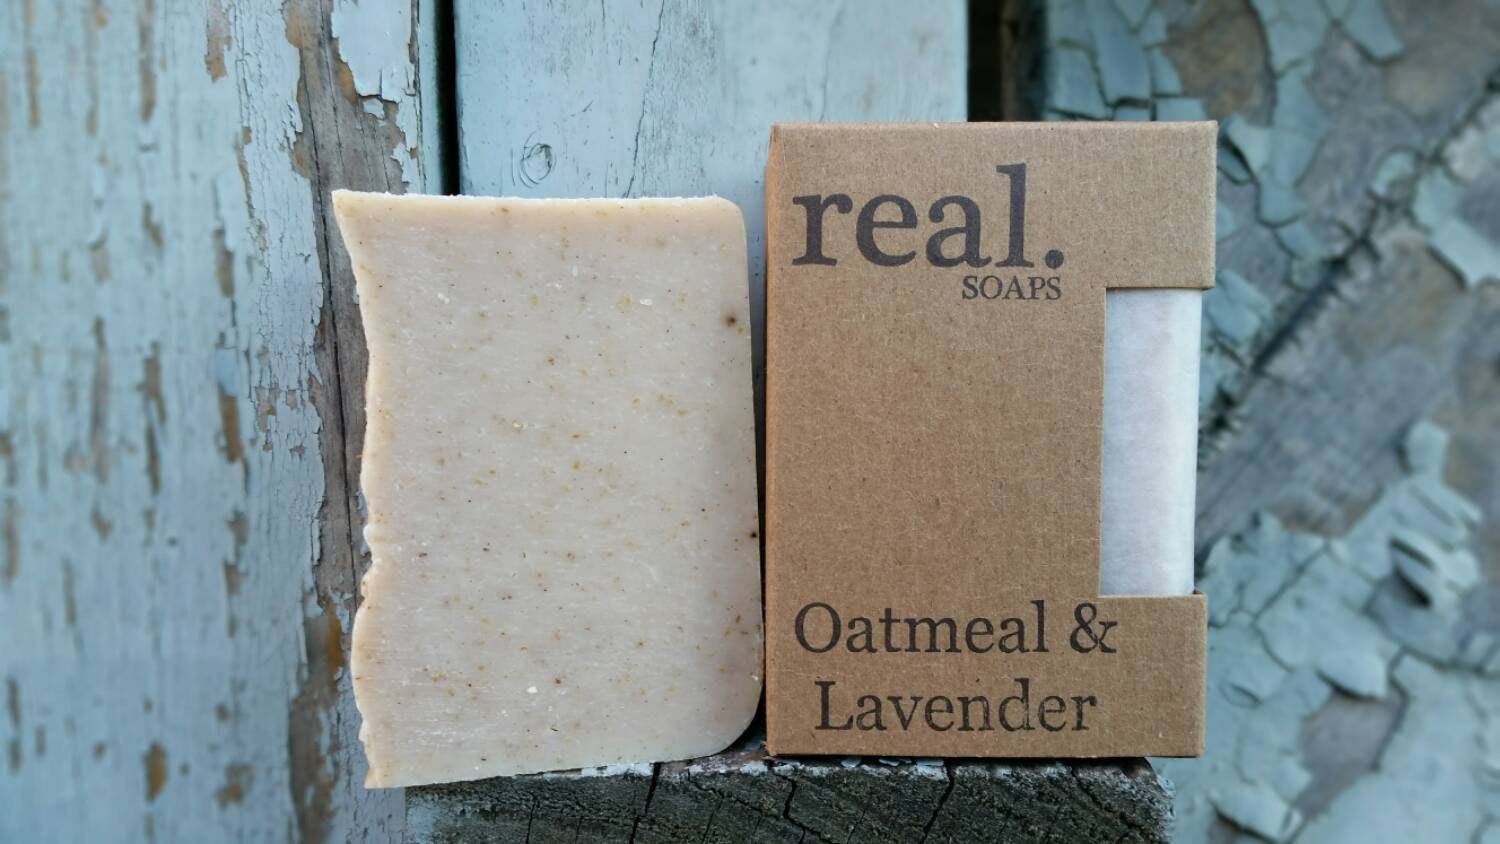 Real. Soaps - Oatmeal & Lavender Soap